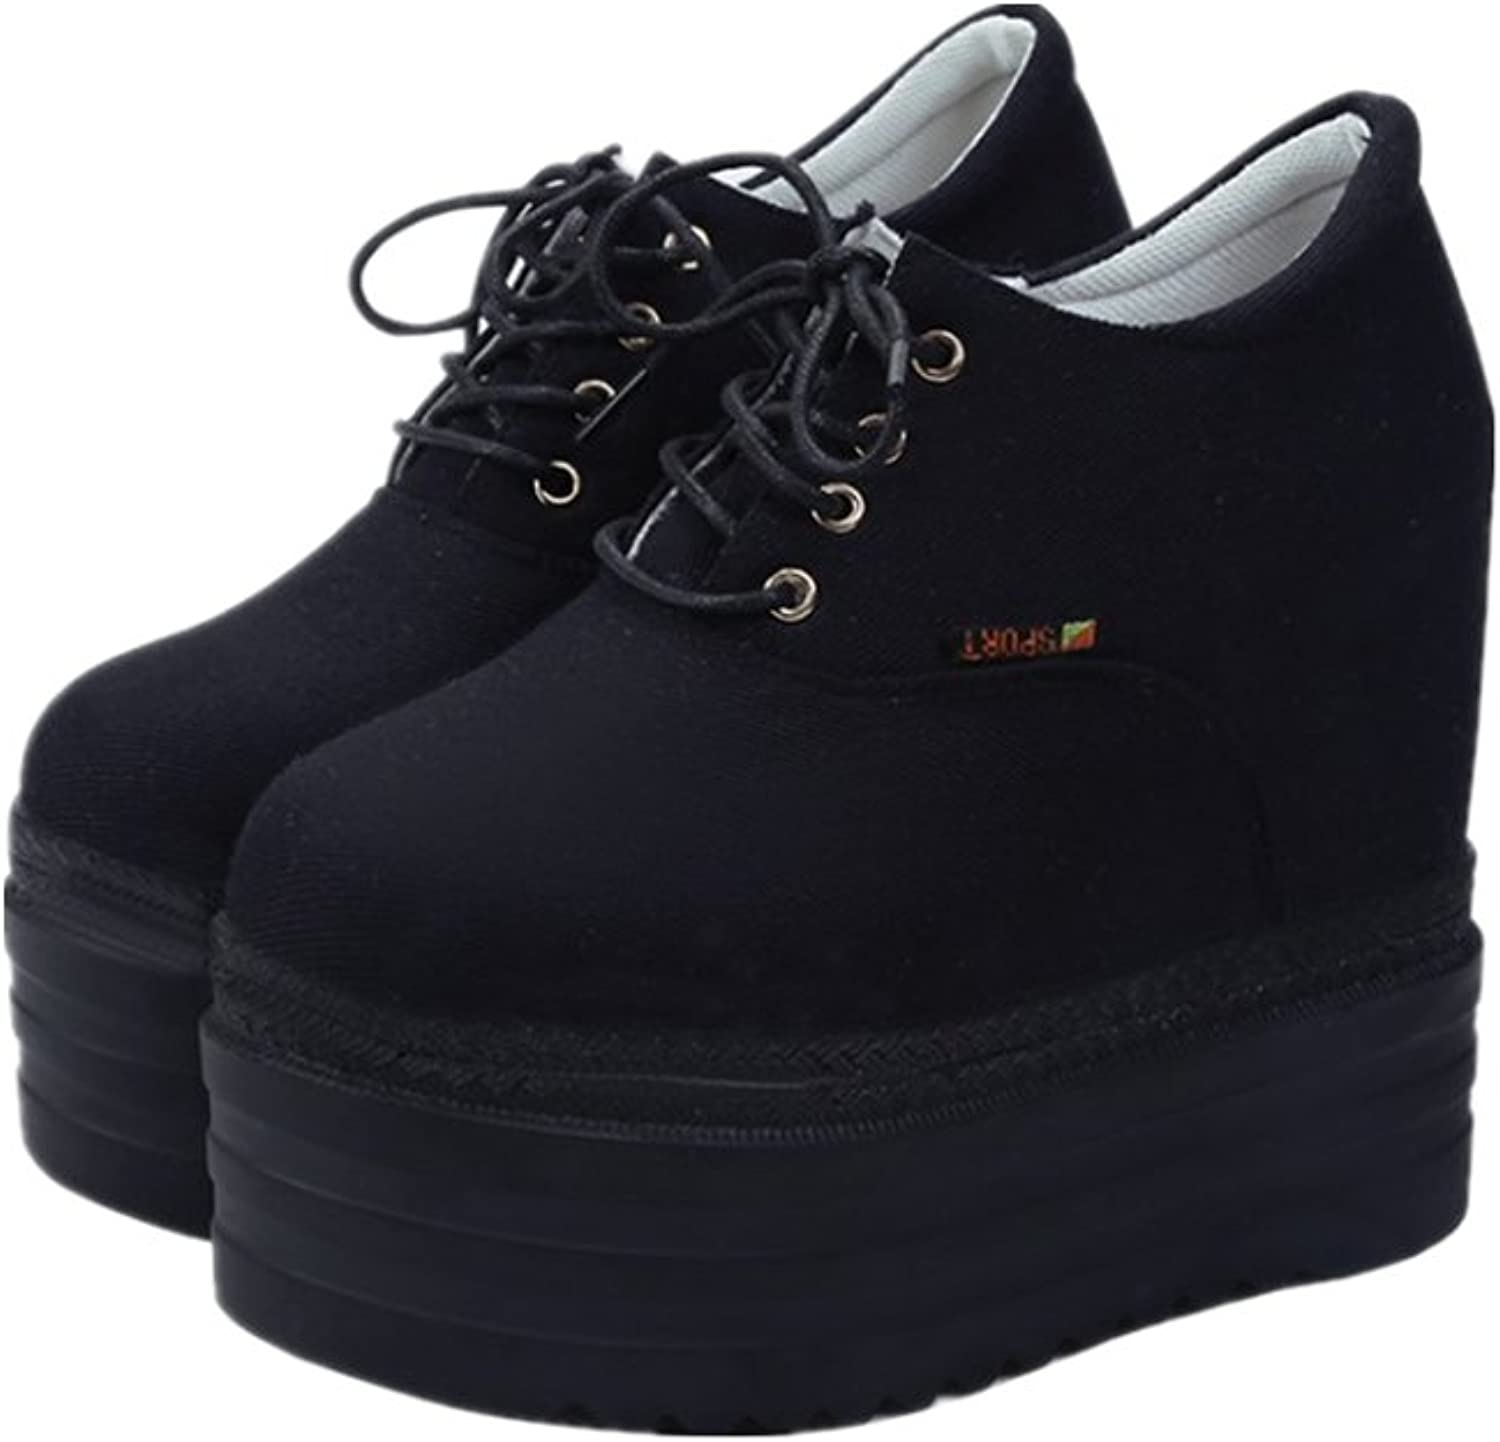 Unyielding1 Height Increase Canvas shoes Woman Hidden Heel Platform shoes White Black Casual shoes Training for Women